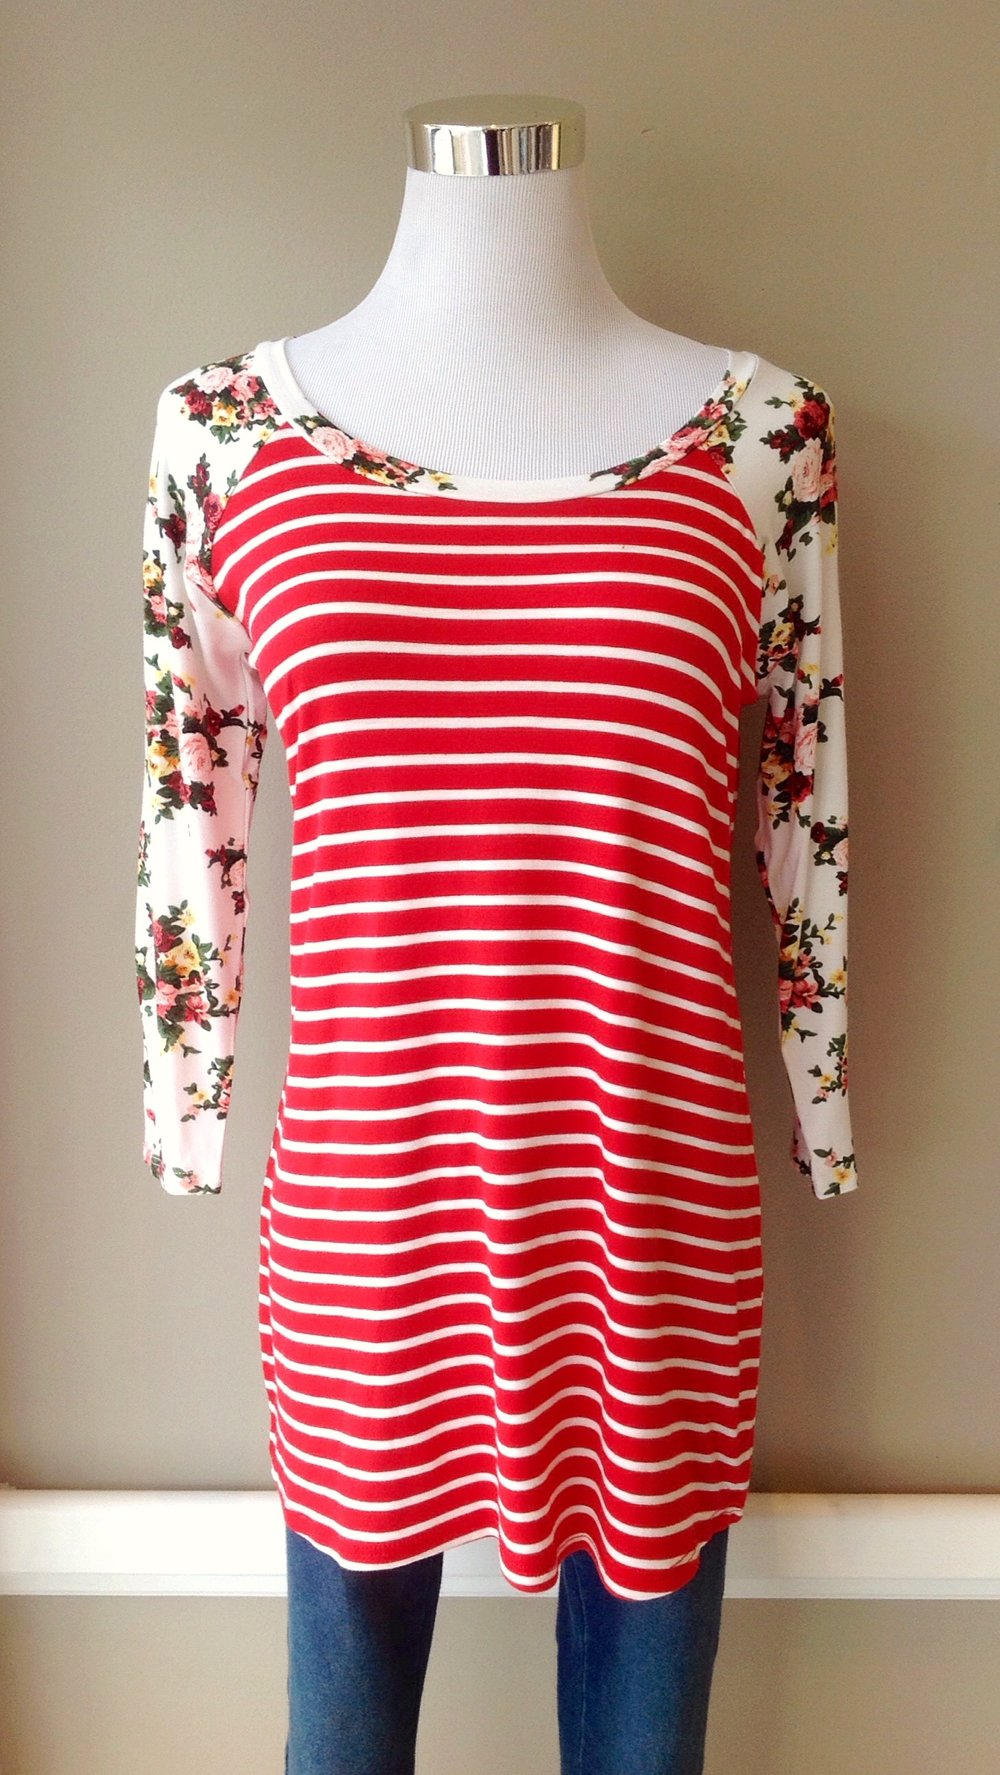 Stripe and floral baseball top in red/multi, $28